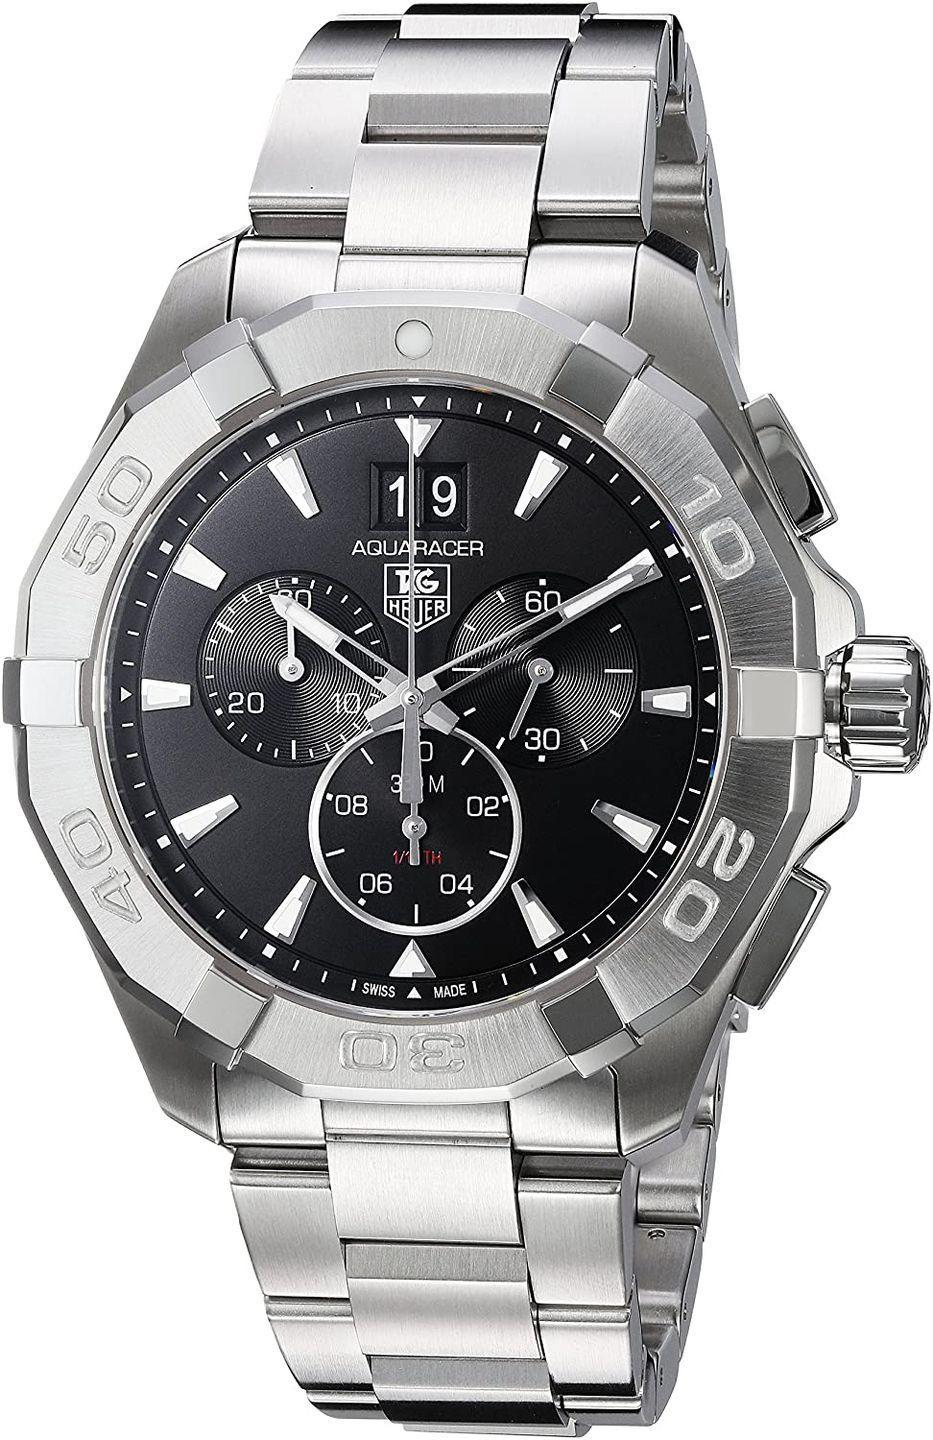 """<p>Chronograph 43mm</p><p><a class=""""link rapid-noclick-resp"""" href=""""https://www.amazon.co.uk/TAG-Heuer-CAY1110-BA0927/dp/B019RAGAVG?tag=hearstuk-yahoo-21&ascsubtag=%5Bartid%7C1923.g.33457947%5Bsrc%7Cyahoo-uk"""" rel=""""nofollow noopener"""" target=""""_blank"""" data-ylk=""""slk:SHOP"""">SHOP</a></p><p>As with most <a href=""""http://www.esquire.com/uk/style/watches/g32127494/best-dive-watches/"""" rel=""""nofollow noopener"""" target=""""_blank"""" data-ylk=""""slk:diving watches"""" class=""""link rapid-noclick-resp"""">diving watches</a>, the Aquaracer's largest customer base is comprised of people with no intention of ever leaving dry land. Still, this tool watch remains a professional piece of kit, introduced in 2003 after its forerunner, the Aquagraph, had been tested by the Navy Seals. Its viability as a diving watch proved all the more impressive given it was a chronograph – ie: it had moving parts to go wrong. Setting the standard in design and appearance ever since.</p><p>£1,550; <a href=""""https://www.amazon.co.uk/TAG-Heuer-CAY1110-BA0927/dp/B019RAGAVG"""" rel=""""nofollow noopener"""" target=""""_blank"""" data-ylk=""""slk:amazon.co.uk"""" class=""""link rapid-noclick-resp"""">amazon.co.uk</a></p>"""